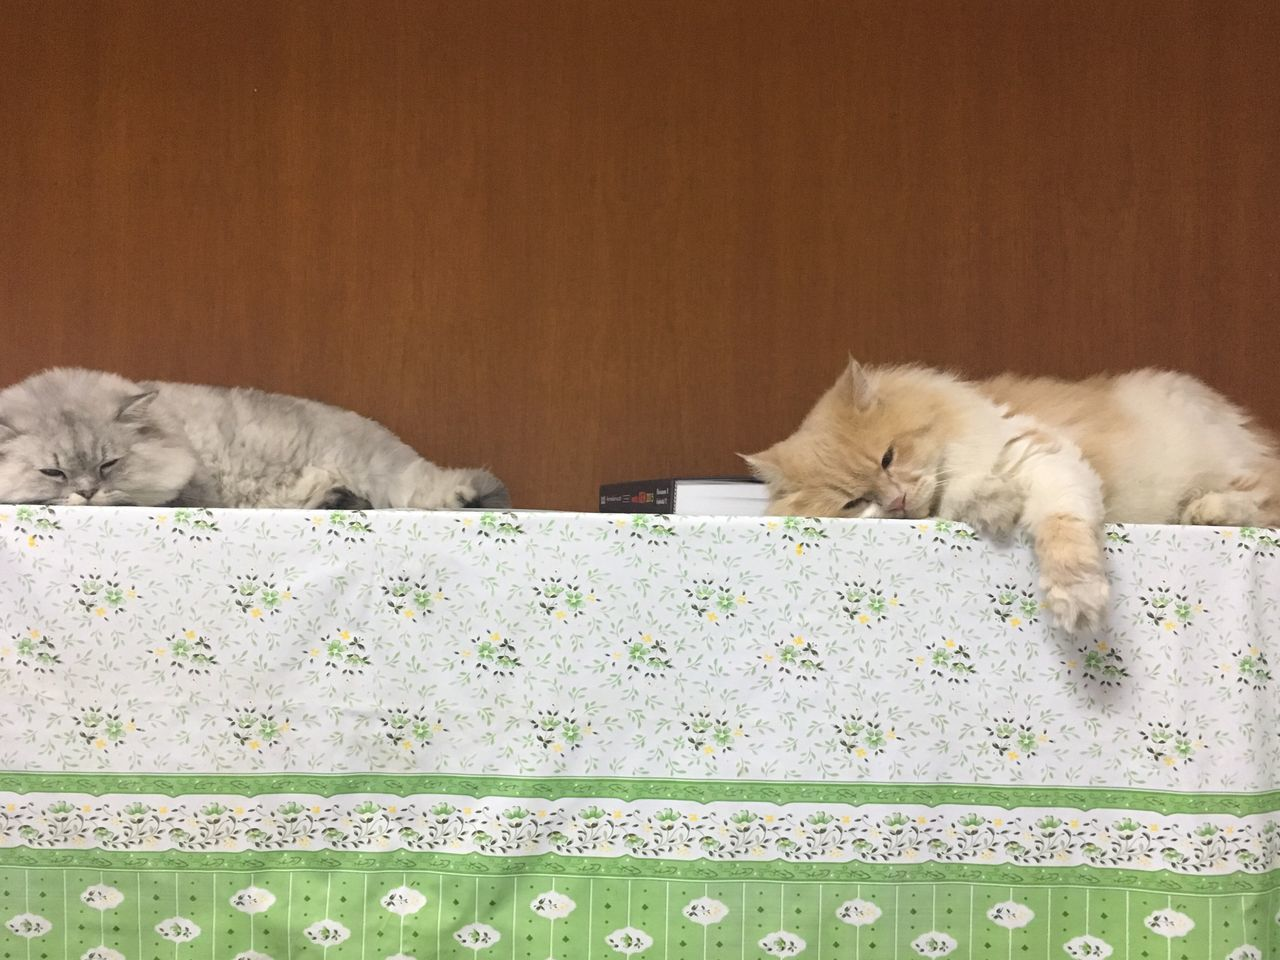 domestic cat, pets, domestic animals, animal themes, mammal, one animal, feline, indoors, sleeping, relaxation, no people, bed, day, close-up, persian cat